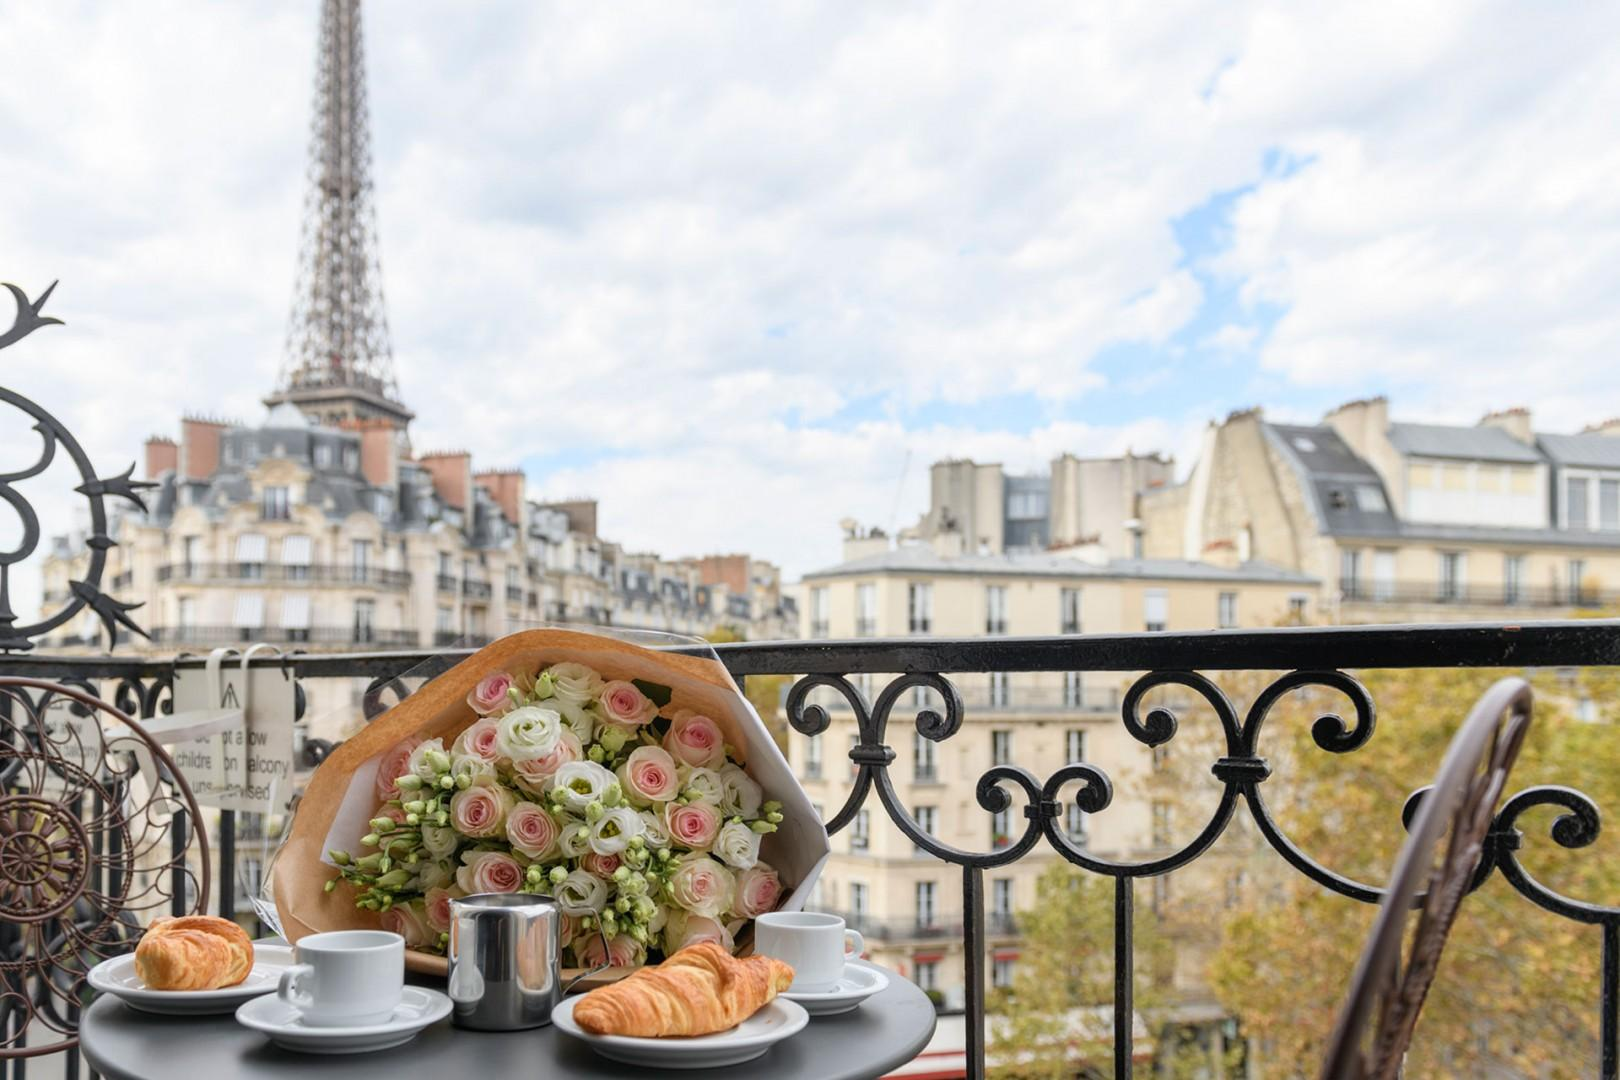 Have an al fresco breakfast on your balcony with stunning Eiffel Tower views!